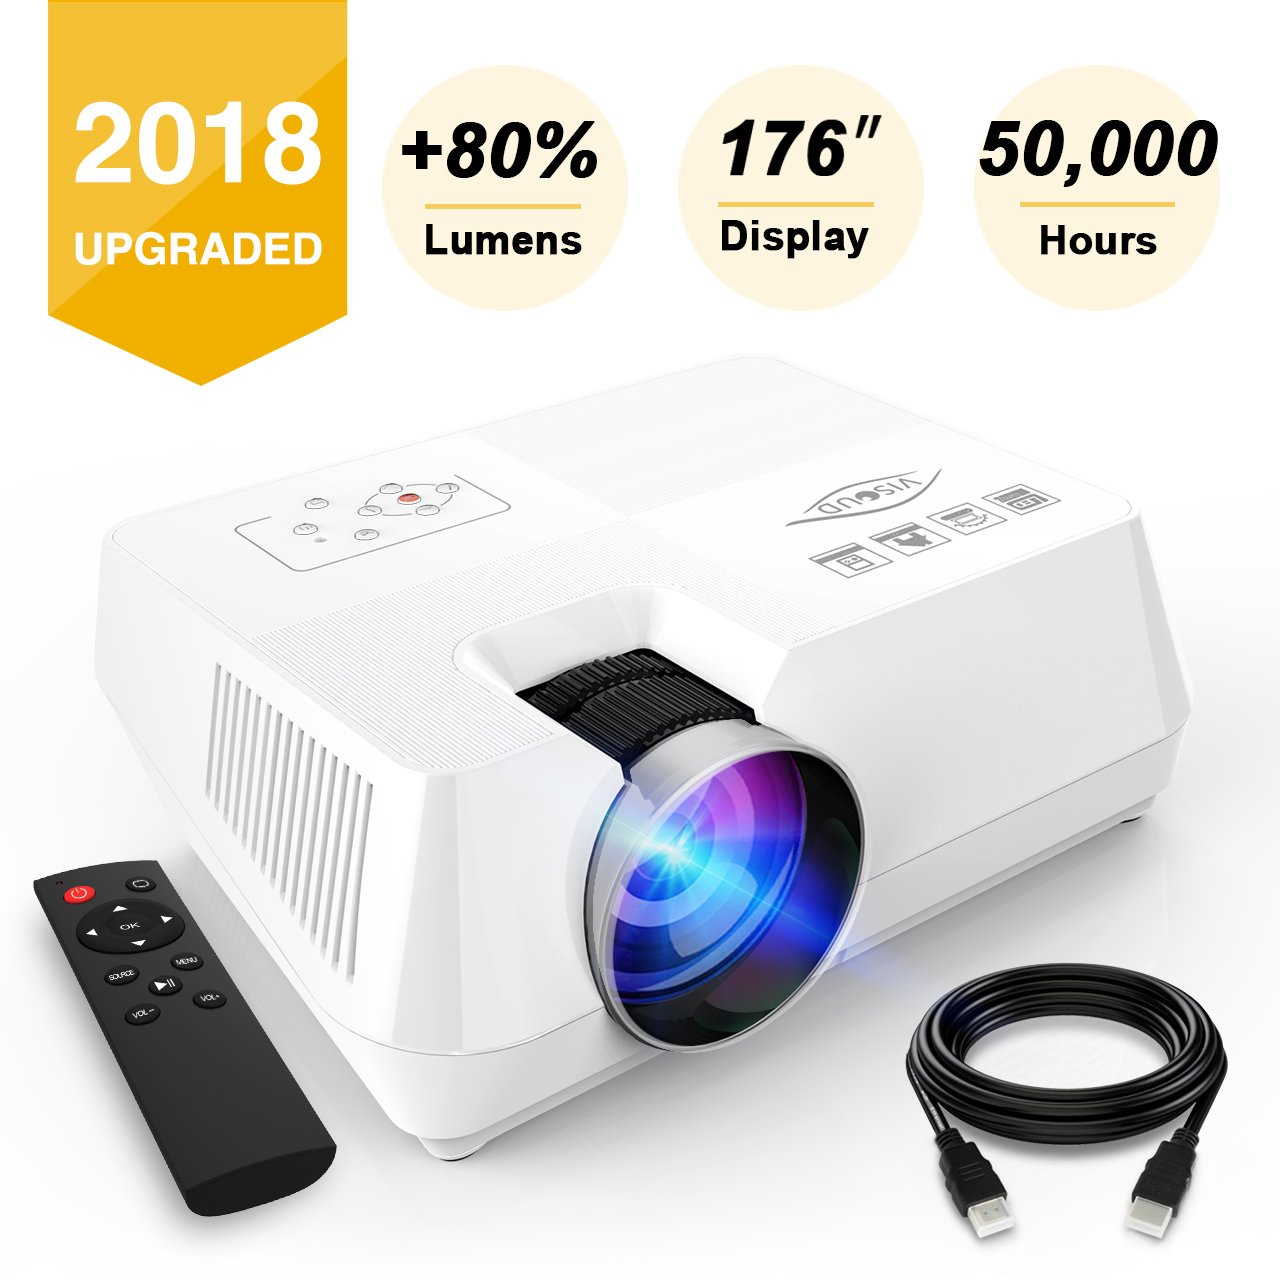 Visoud Mini Portable Projector, 2200 lumen Full HD LED Video Projector Compatible with Fire TV Stick, HDMI, VGA, USB, AV, SD for Home Theater Entertainment by Visoud